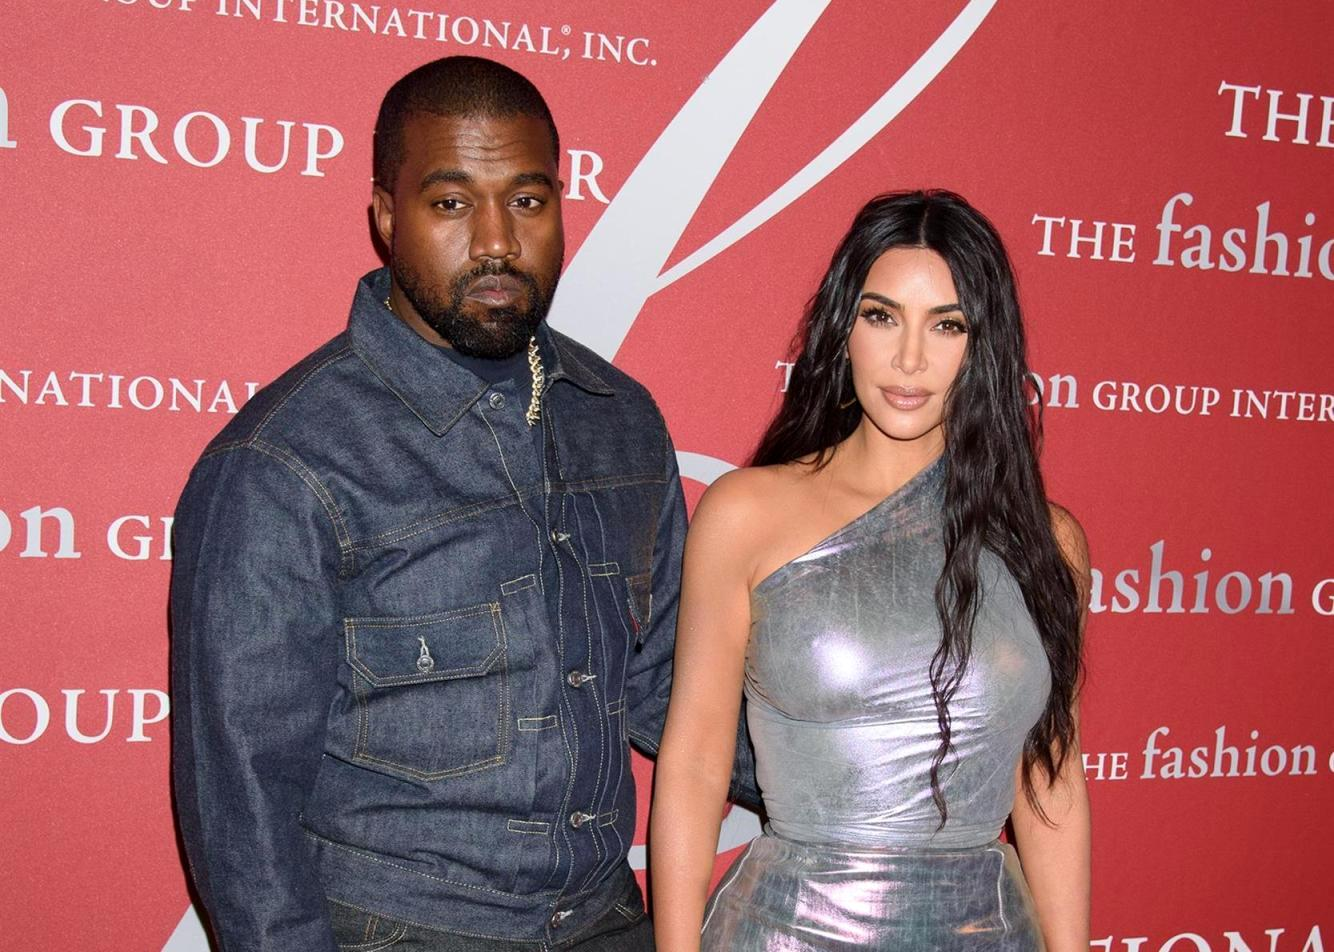 """REPORT: Kanye West Cheated on Kim Kardashian During Marriage But KUWTK Star is """"Open"""" to Getting Back Together, Find Out Why"""